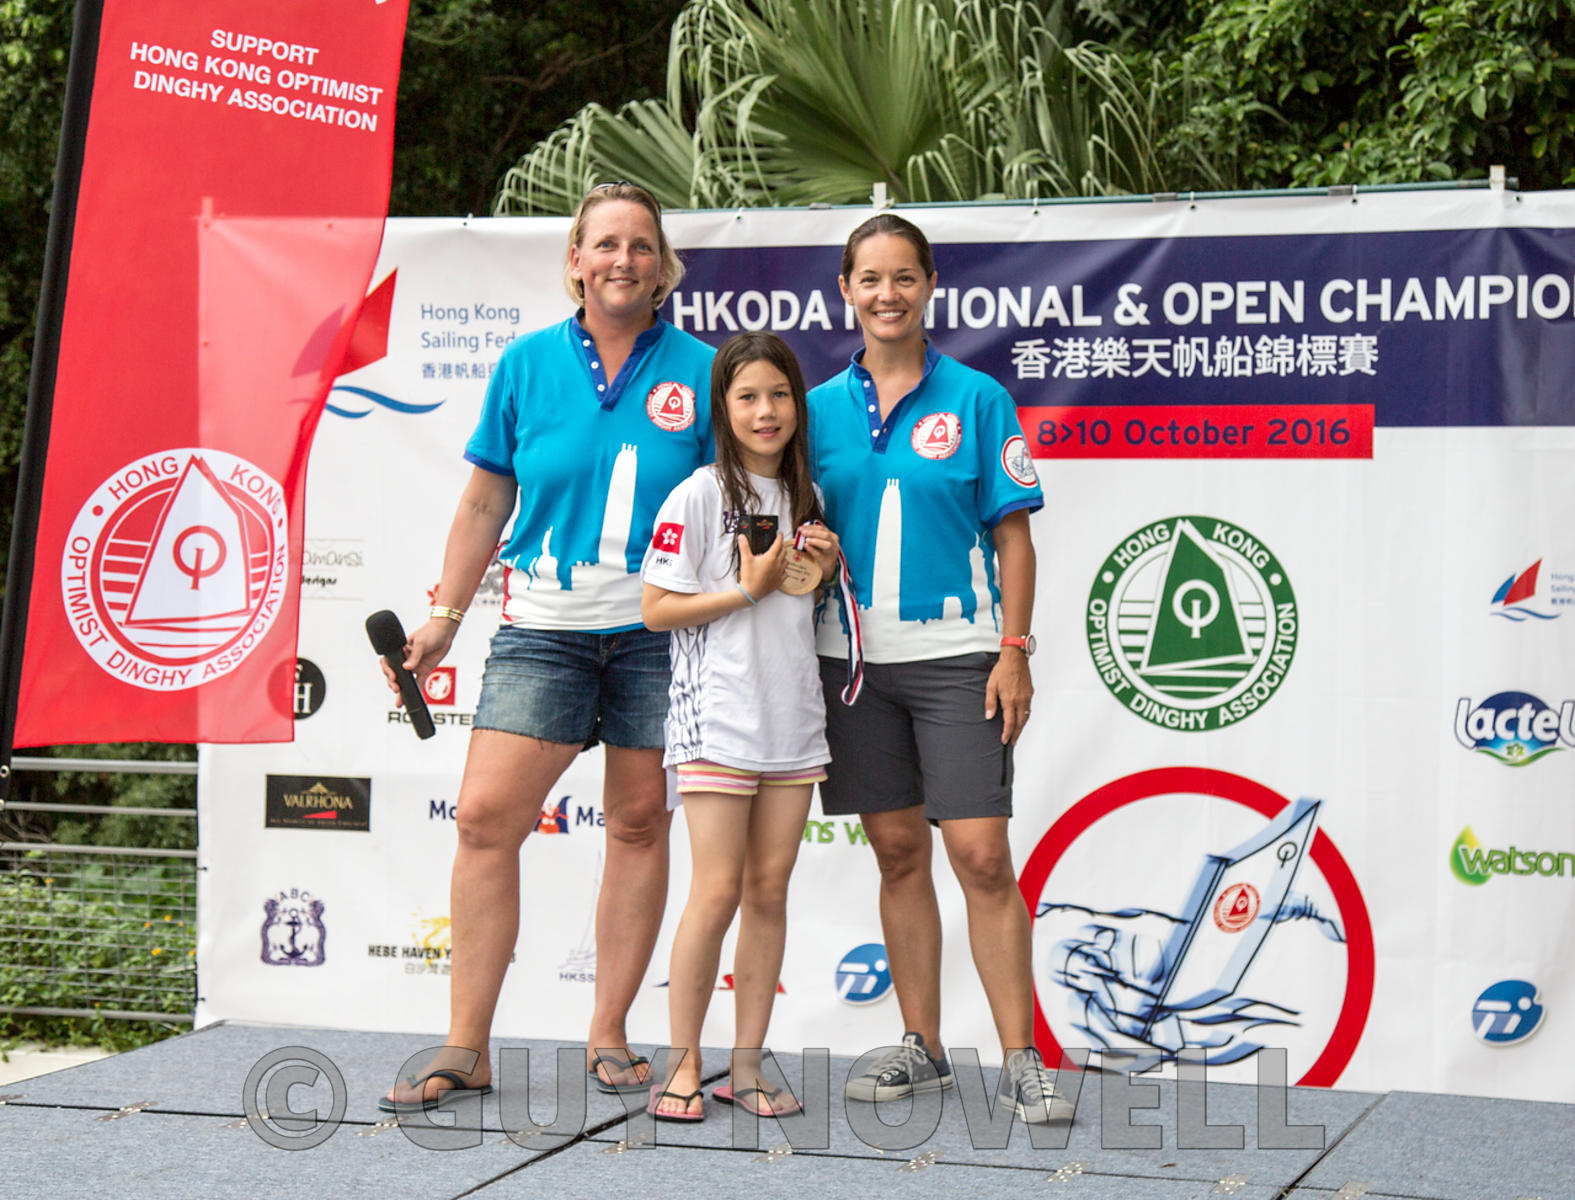 HKODA National and Open Championships 2016.